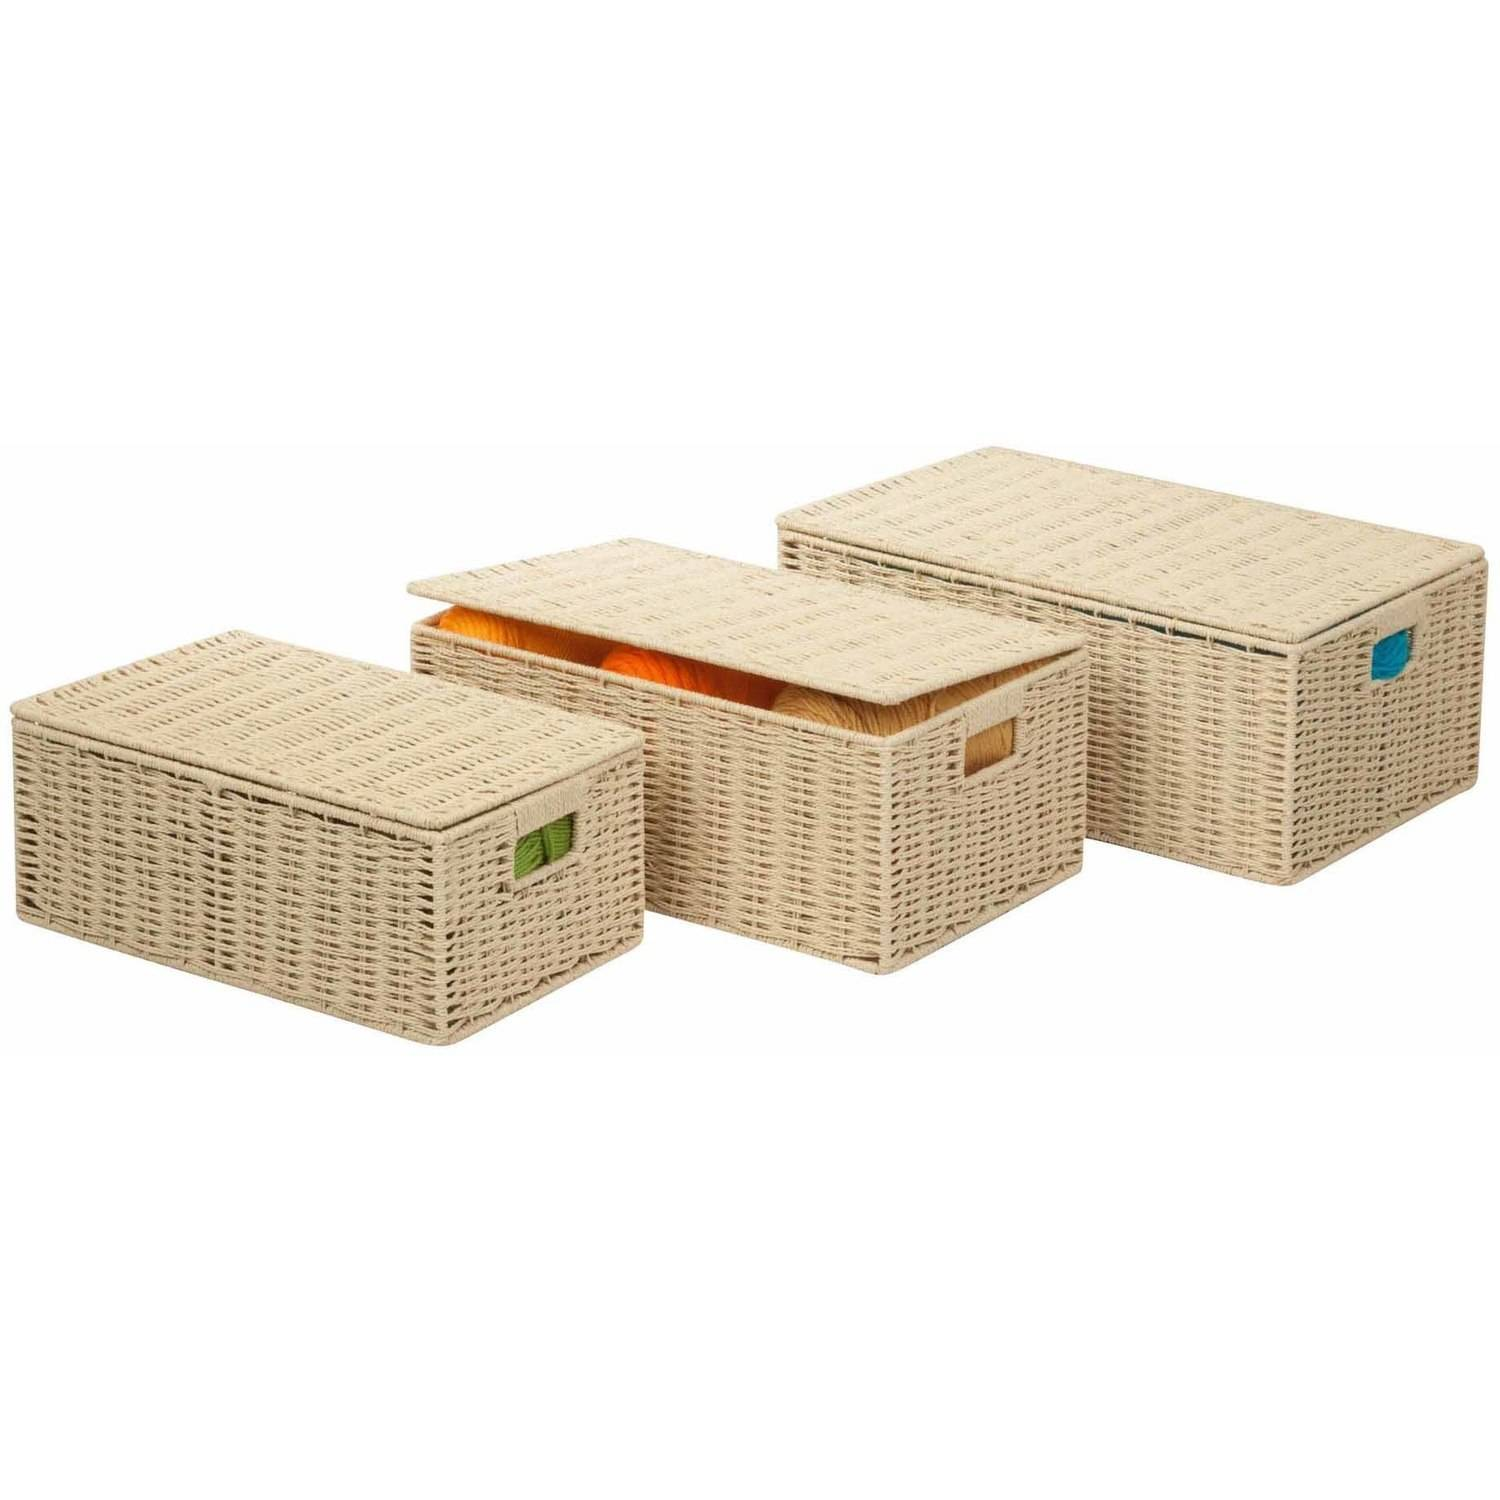 Charmant Honey Can Do Paper Rope Storage Baskets With Lids, Multicolor (3 Piece Set